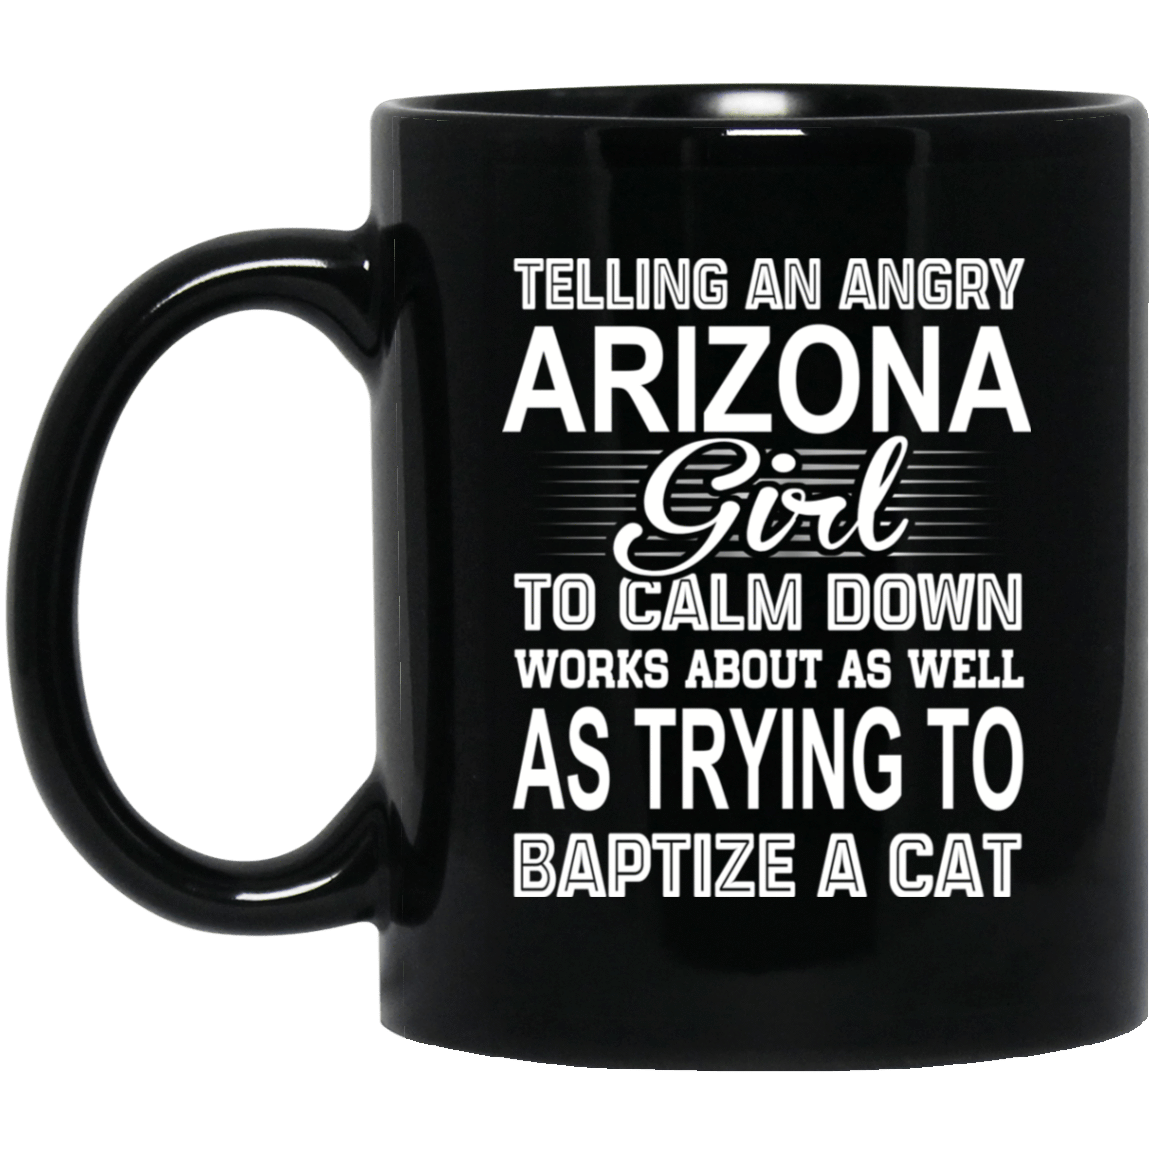 Telling An Angry Arizona Girl To Calm Down Works About As Well As Trying To Baptize A Cat Mug 1065-10181-76151926-49307 - Tee Ript